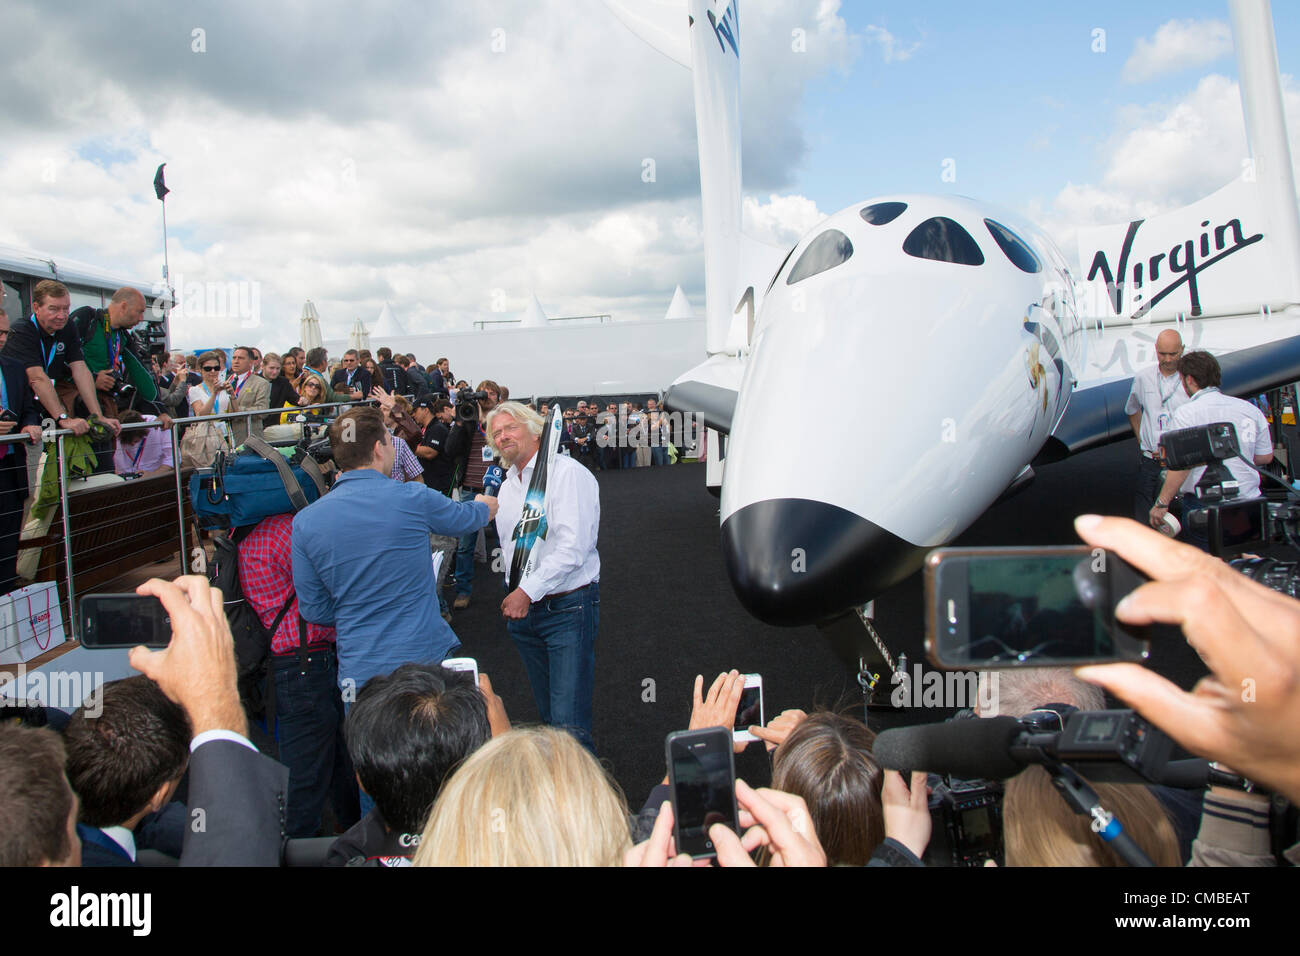 Farnborough, UK. 11th July, 2012. Sir Richard Branson's Virgin Galactic spaceship makes its UK debut at the - Stock Image